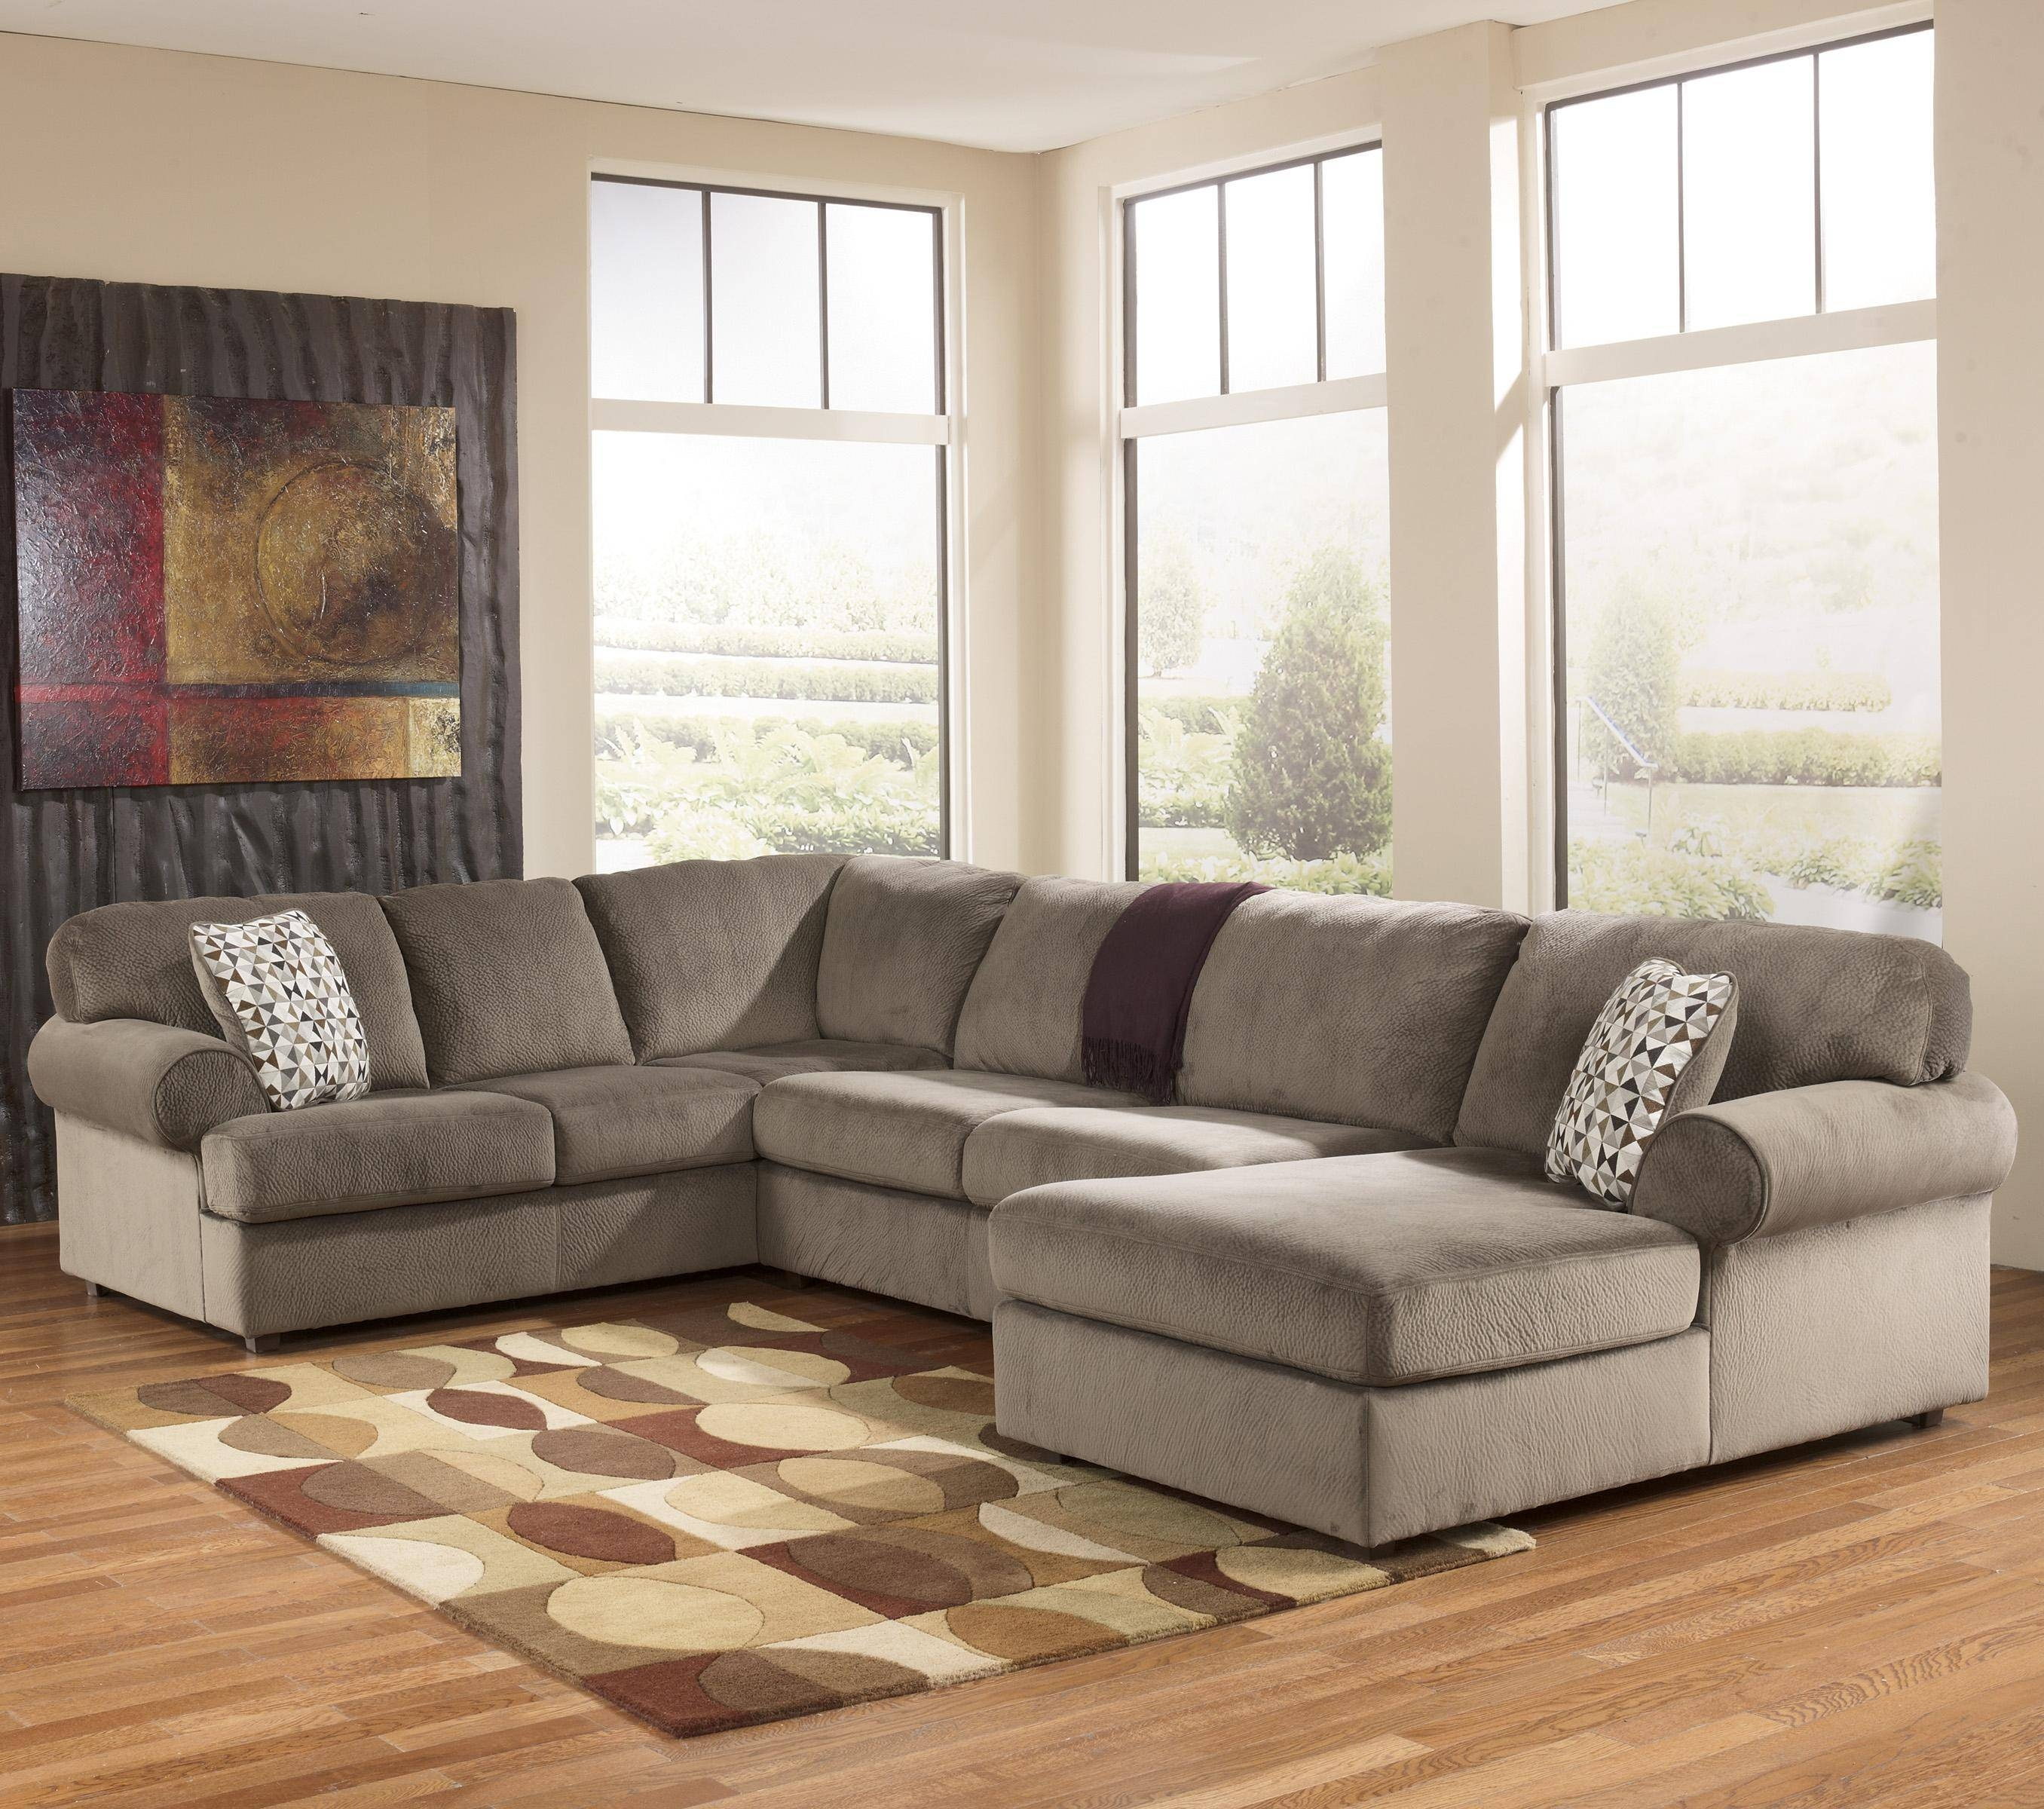 Signature Designashley Jessa Place - Dune Casual Sectional inside Signature Design Sectional Sofas (Image 13 of 15)